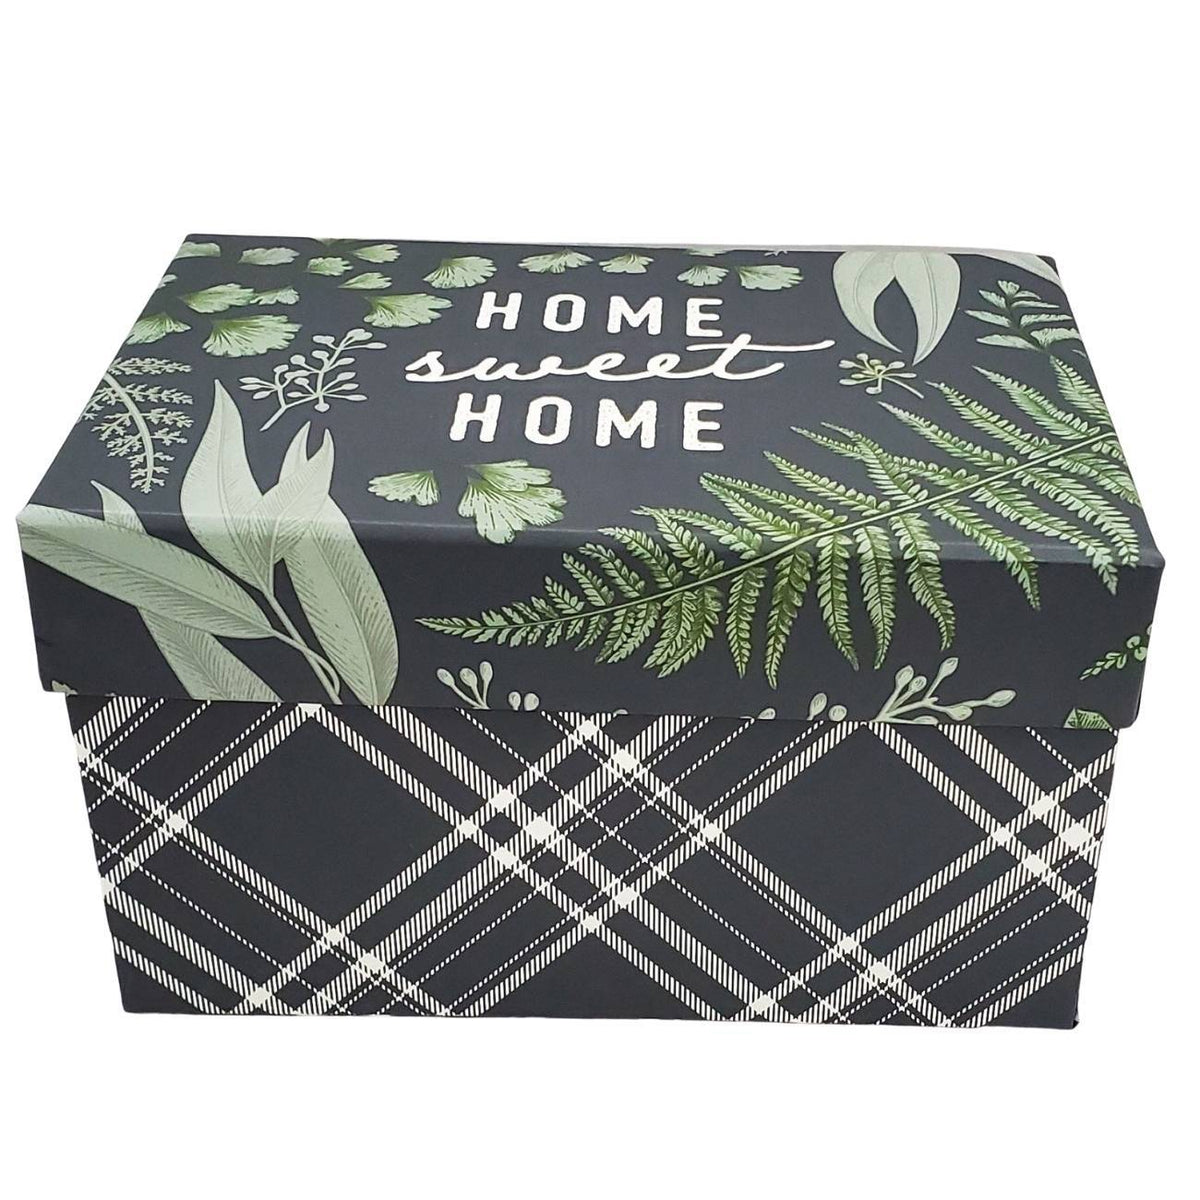 Gift Box of Luxury Soaps He Will Love